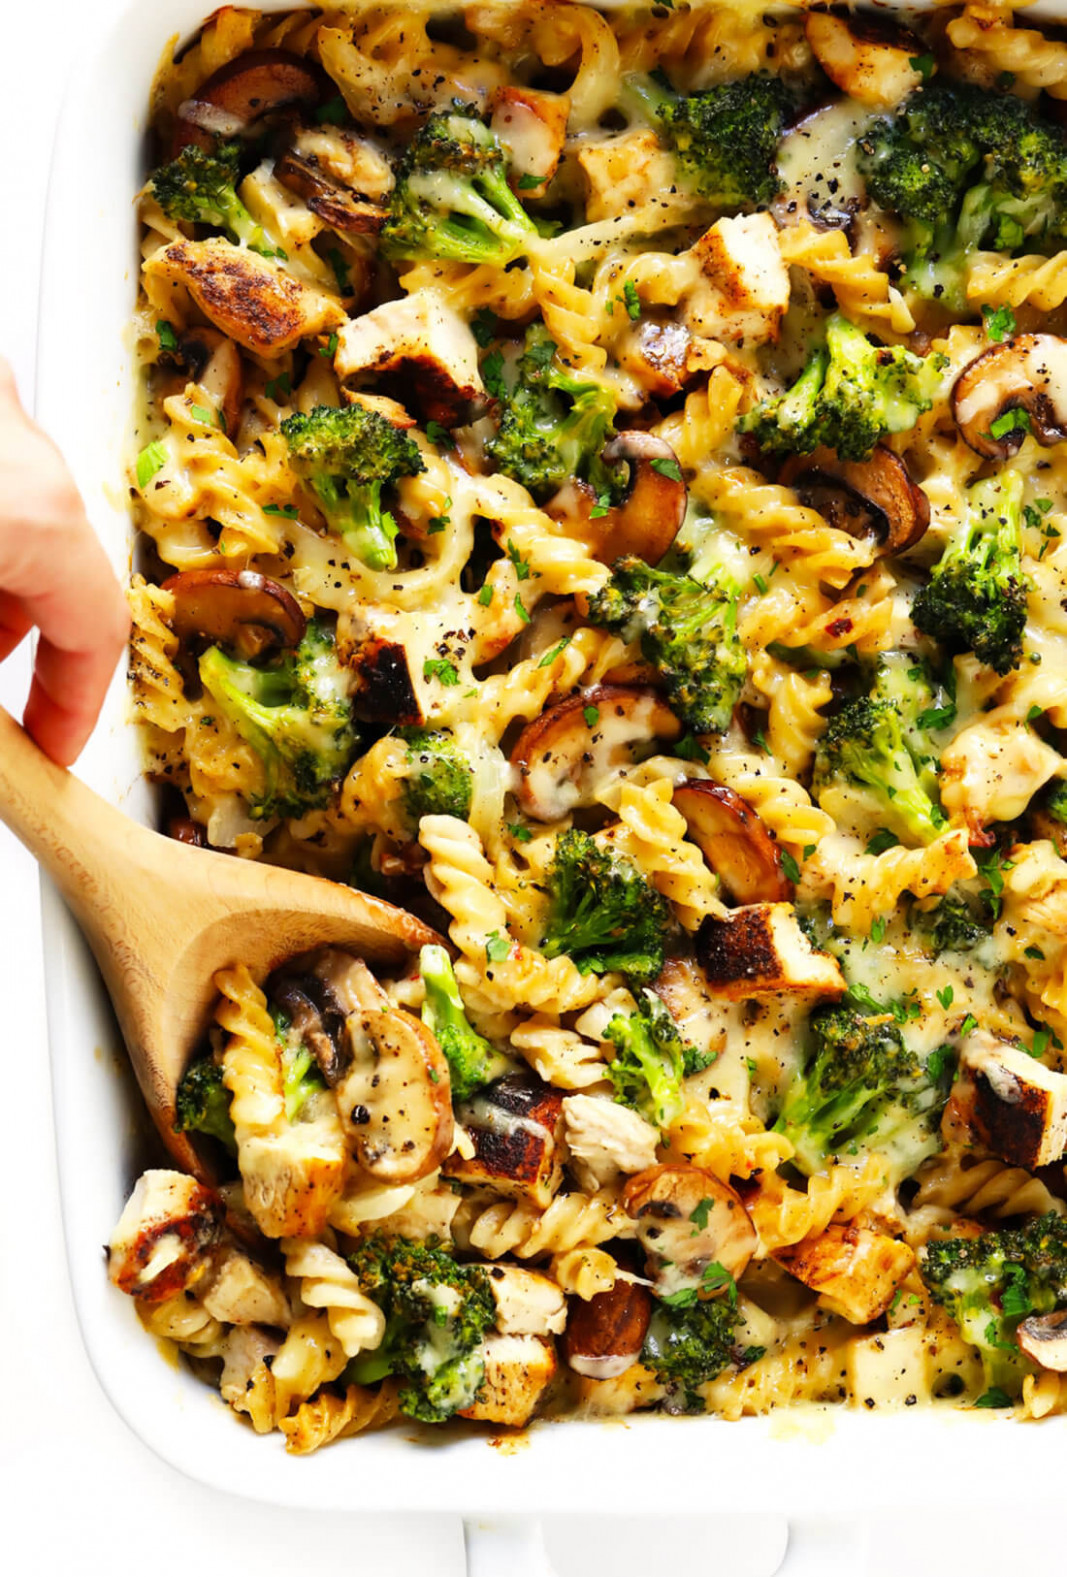 Healthier Broccoli Chicken Casserole Recipe | Gimme Some Oven - healthy recipes with mushrooms